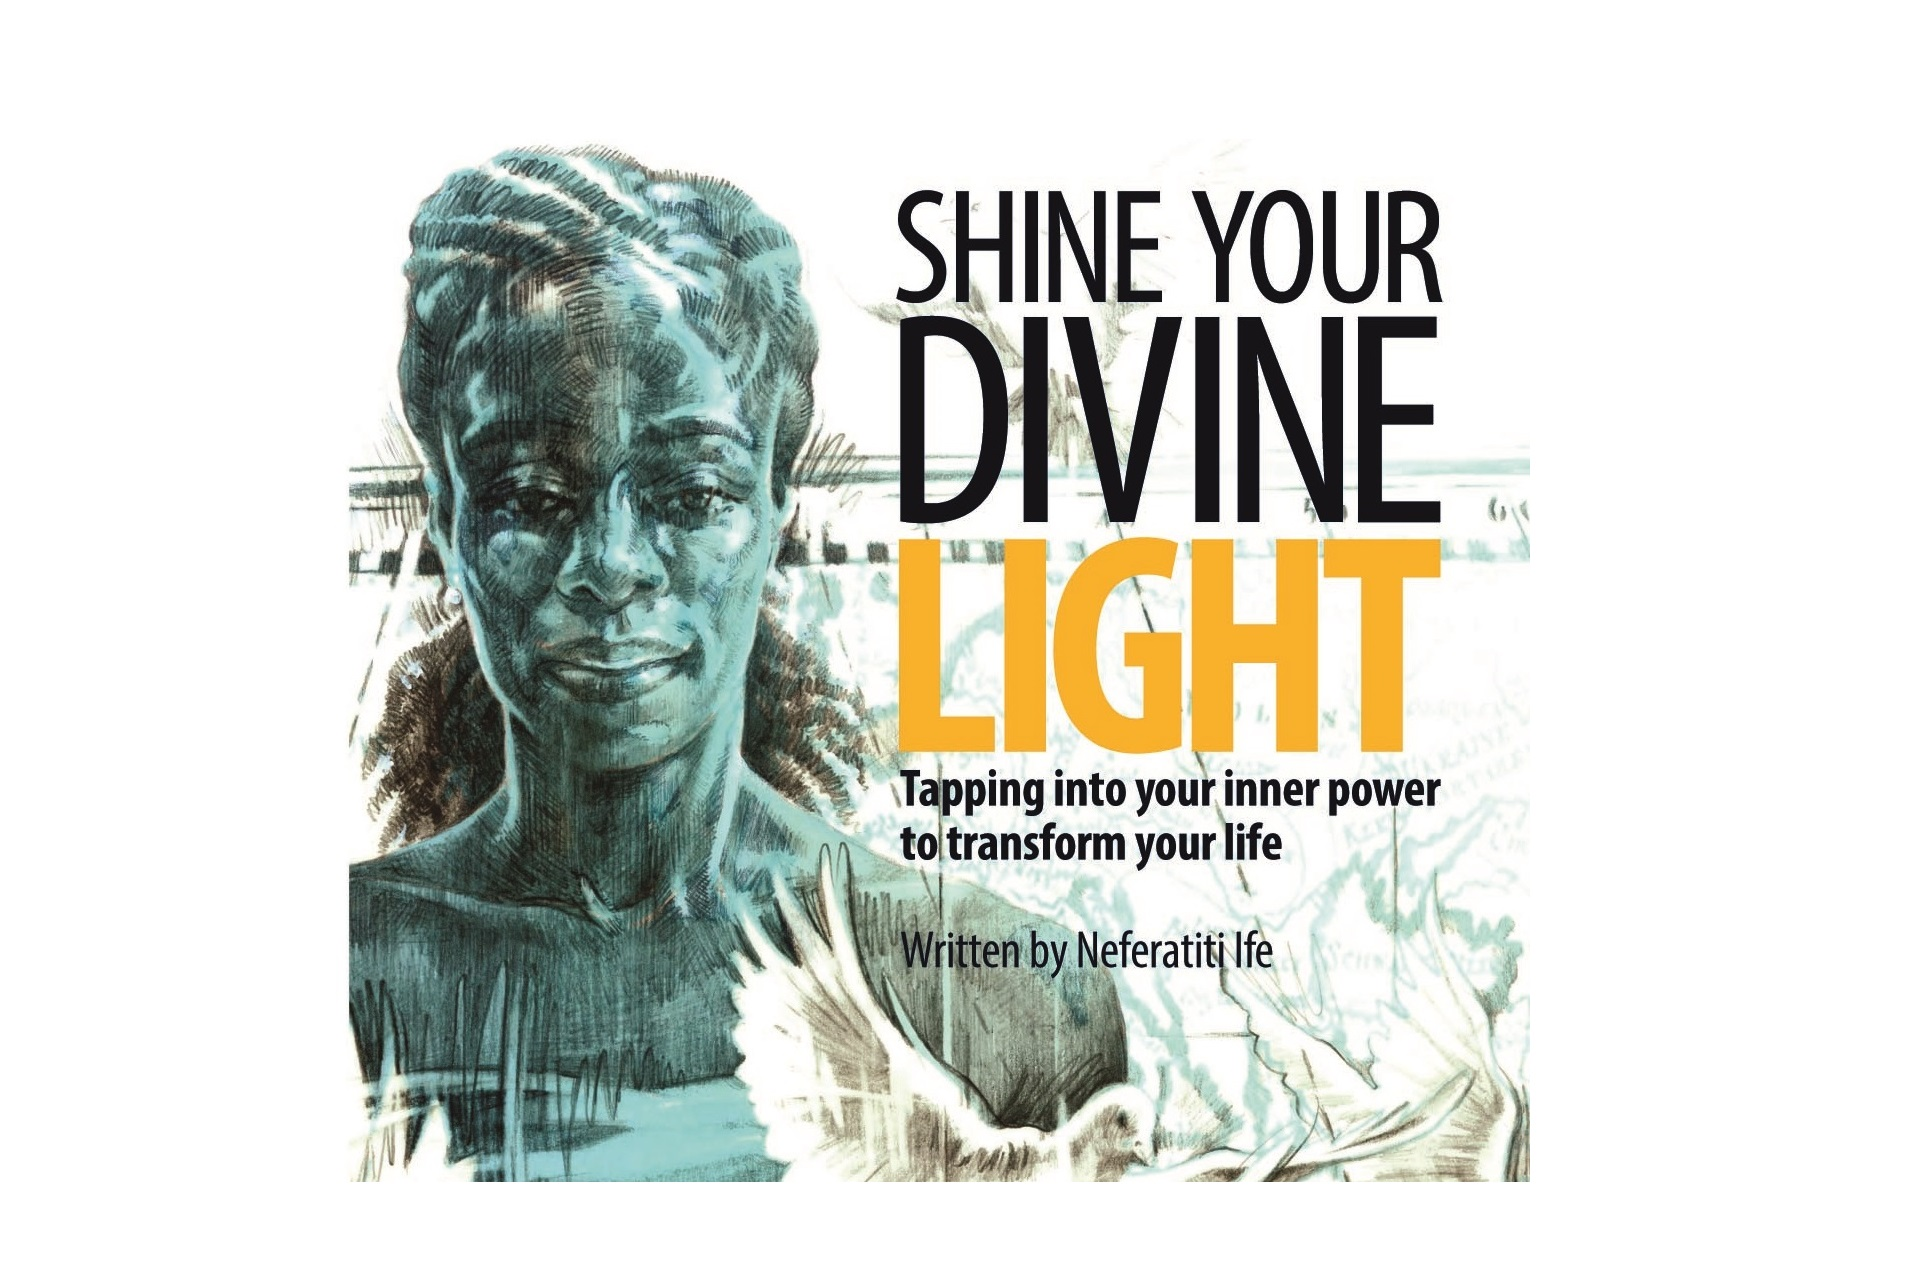 Shine Your Divine Light by Neferatiti Ife